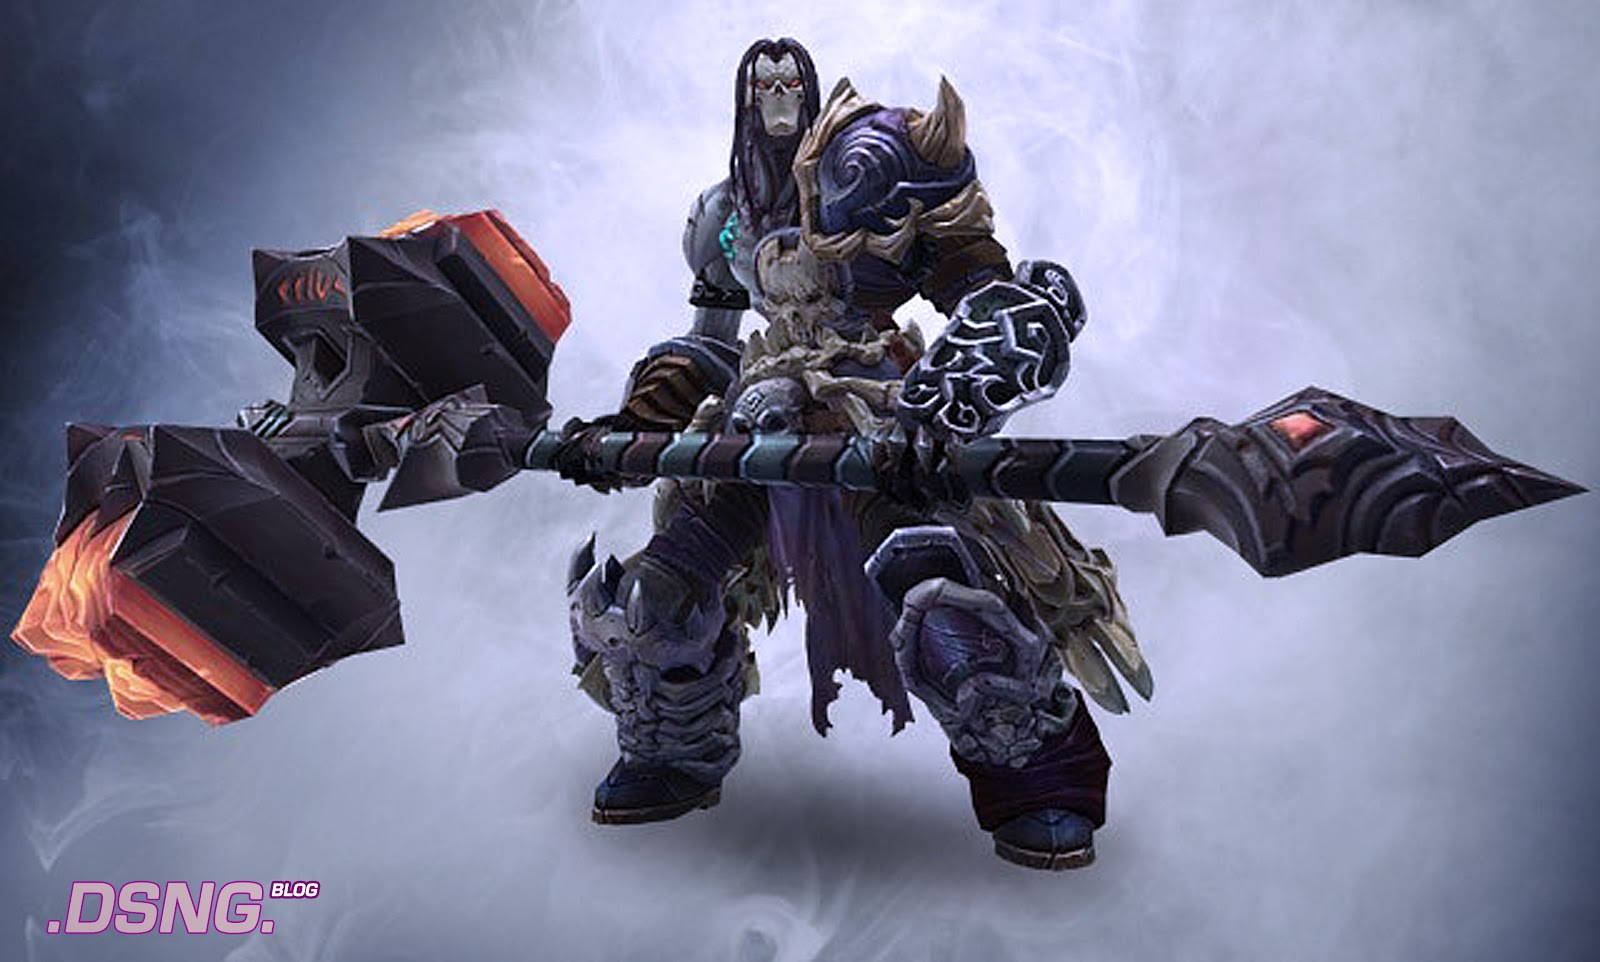 image - darksiders 2 game storymode death strikes wallpaper joe mad